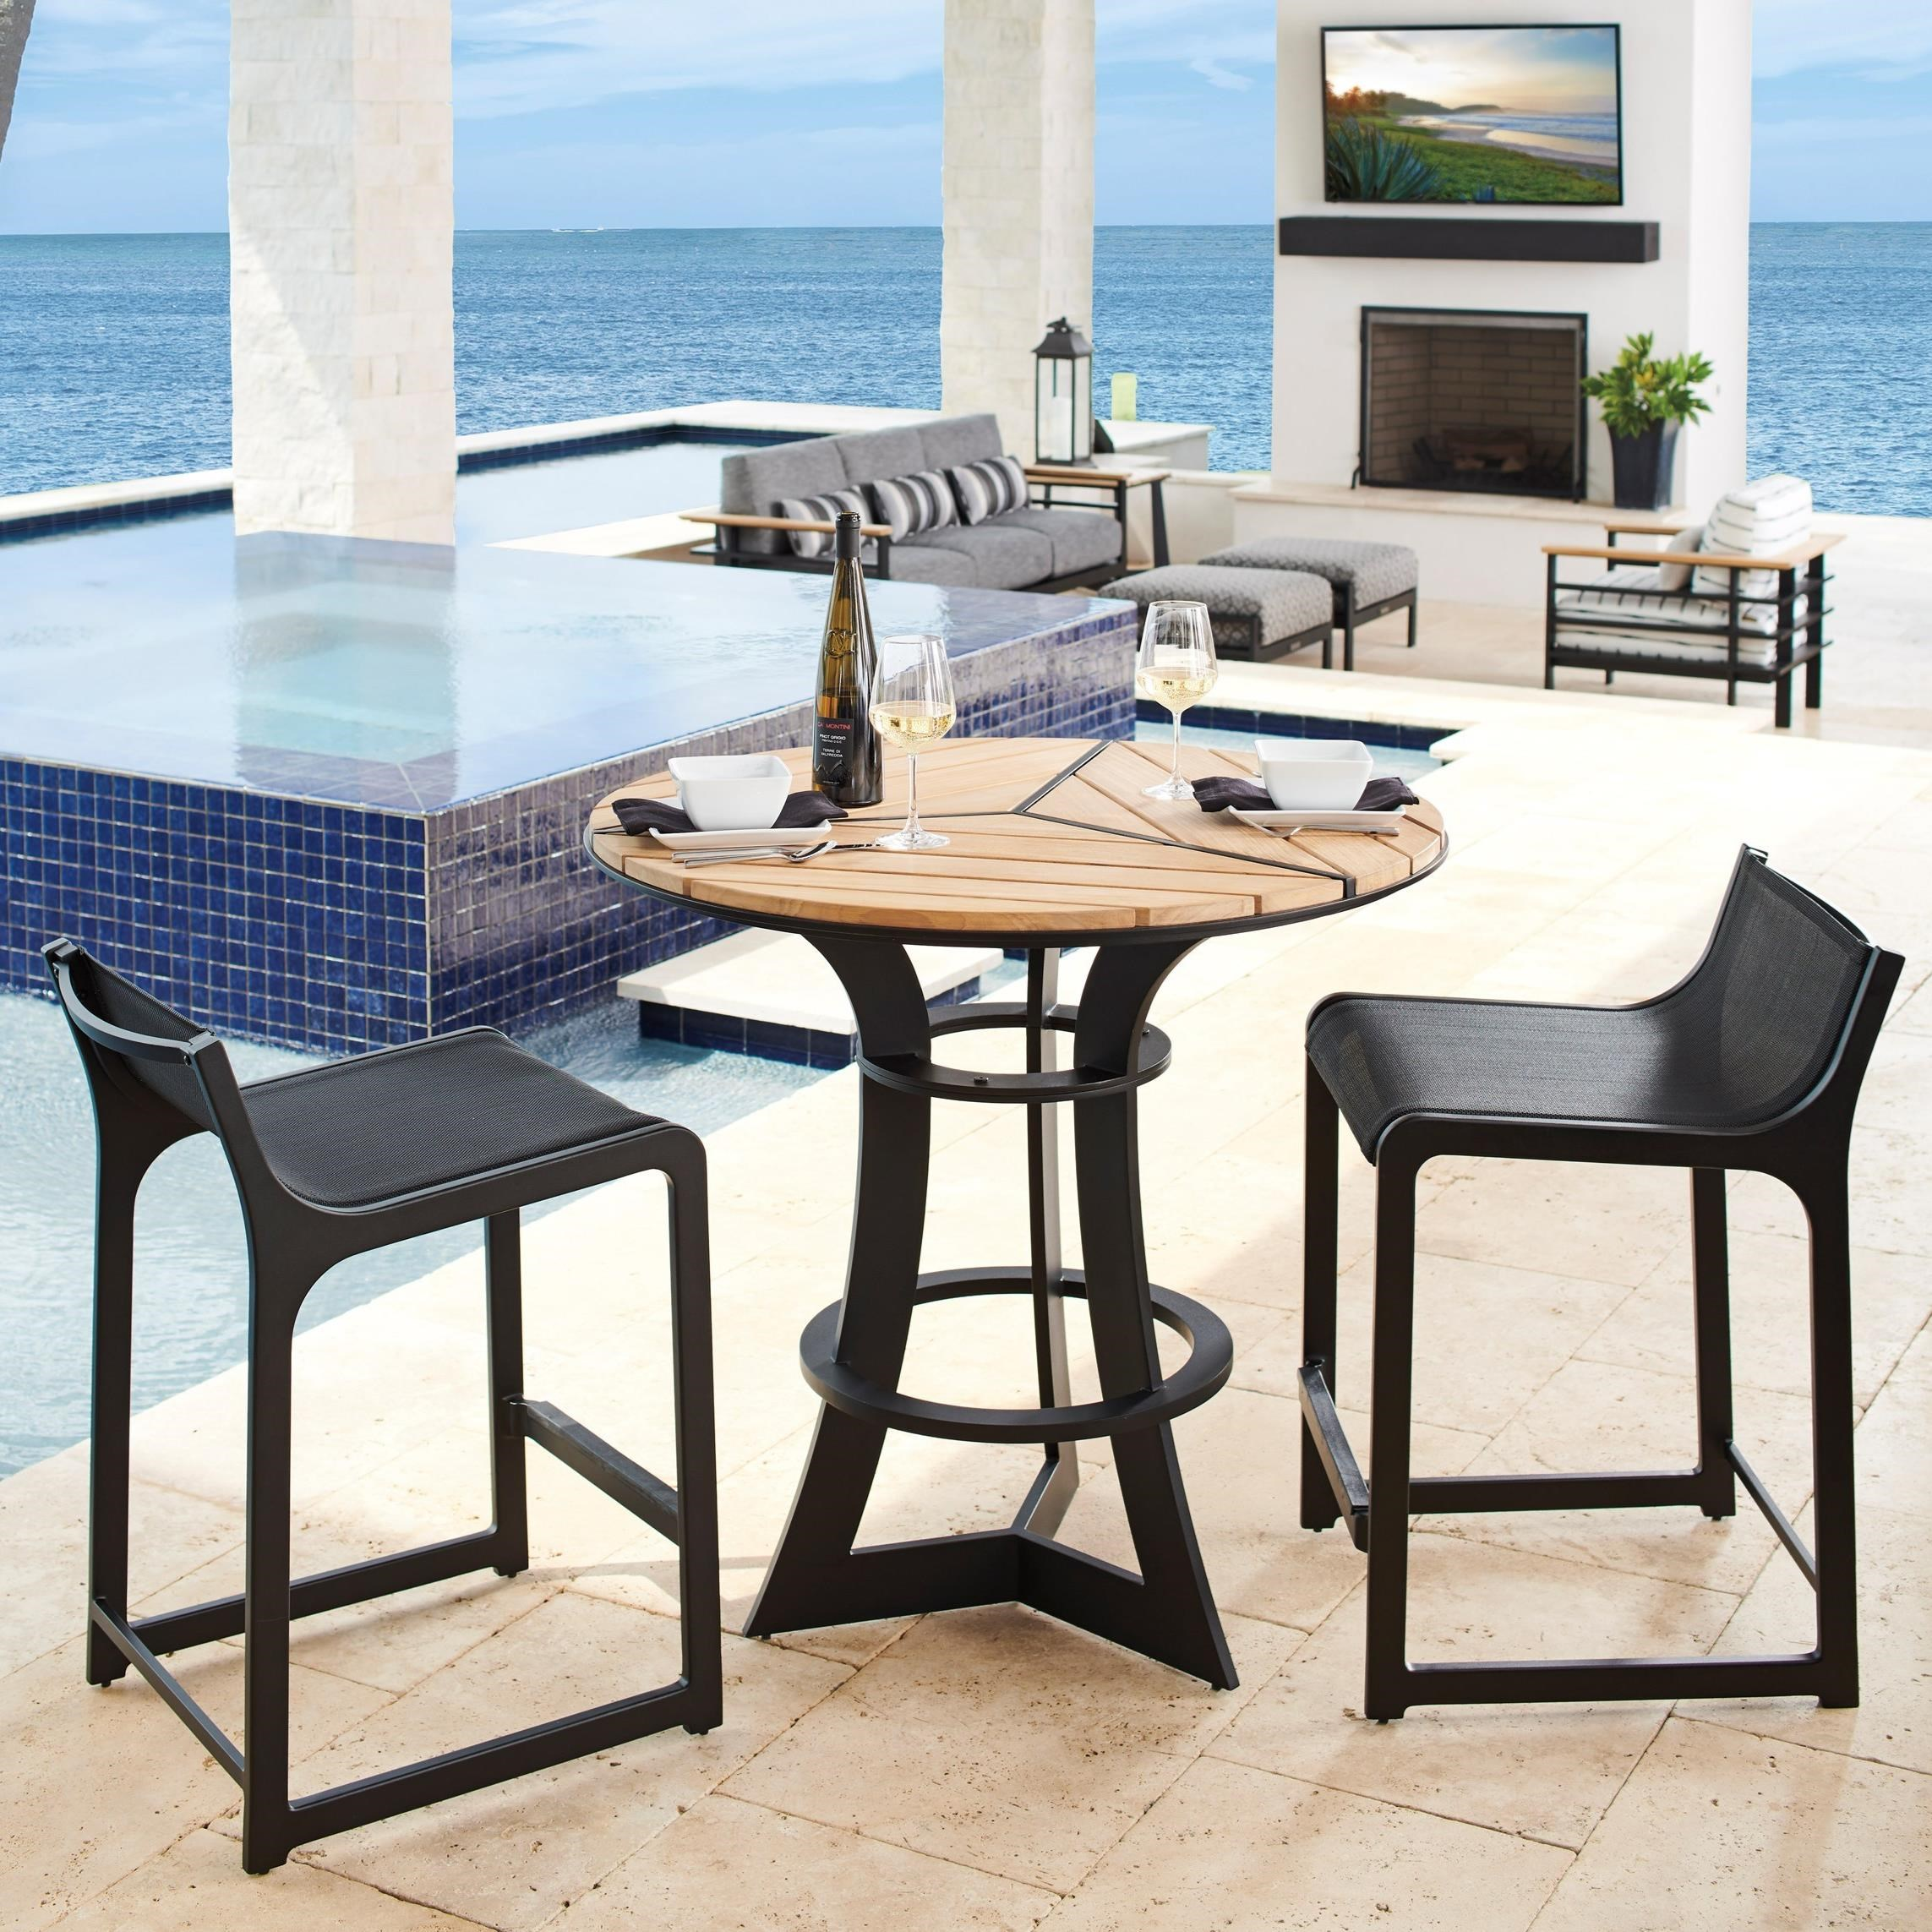 South Beach 3-Piece Outdoor Bistro Set w/ Counter Stools by Tommy Bahama Outdoor Living at Baer's Furniture